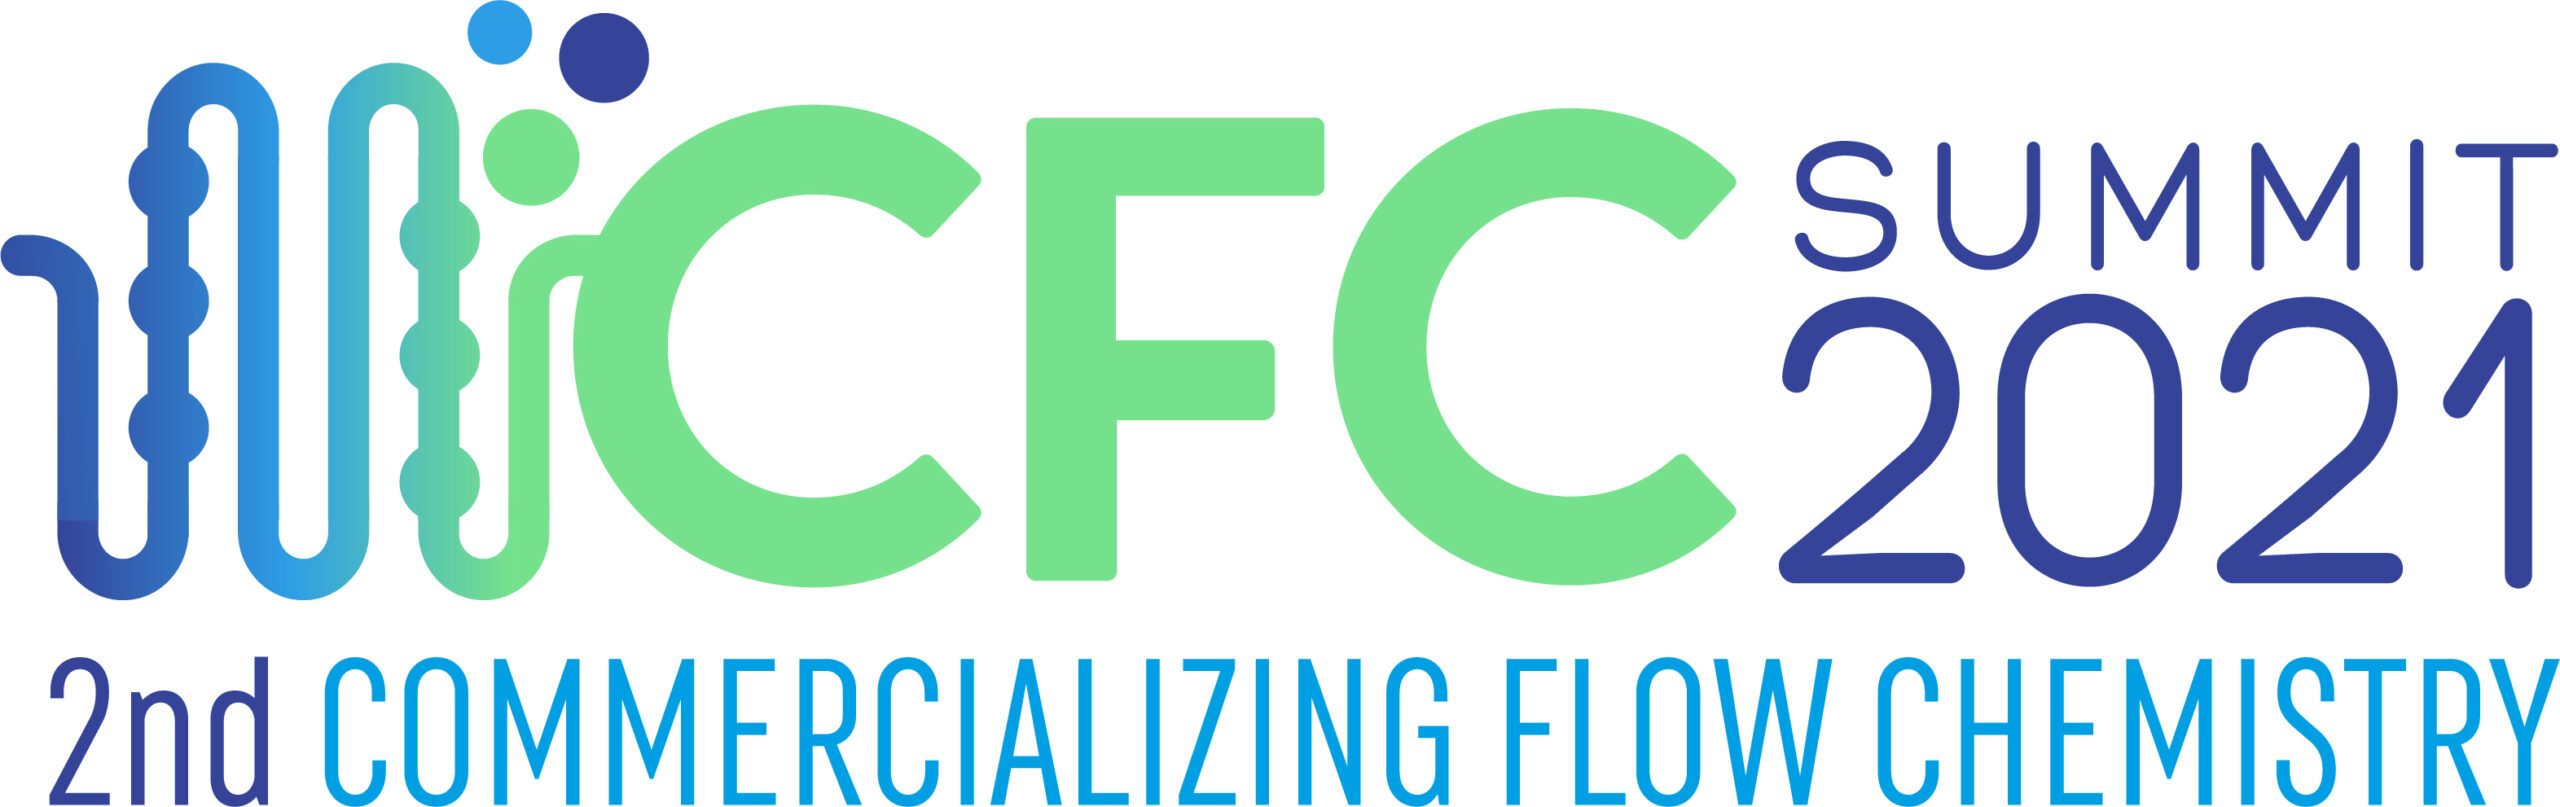 20647 ÔÇô 2nd Commercializing Flow Chemistry Summit logo